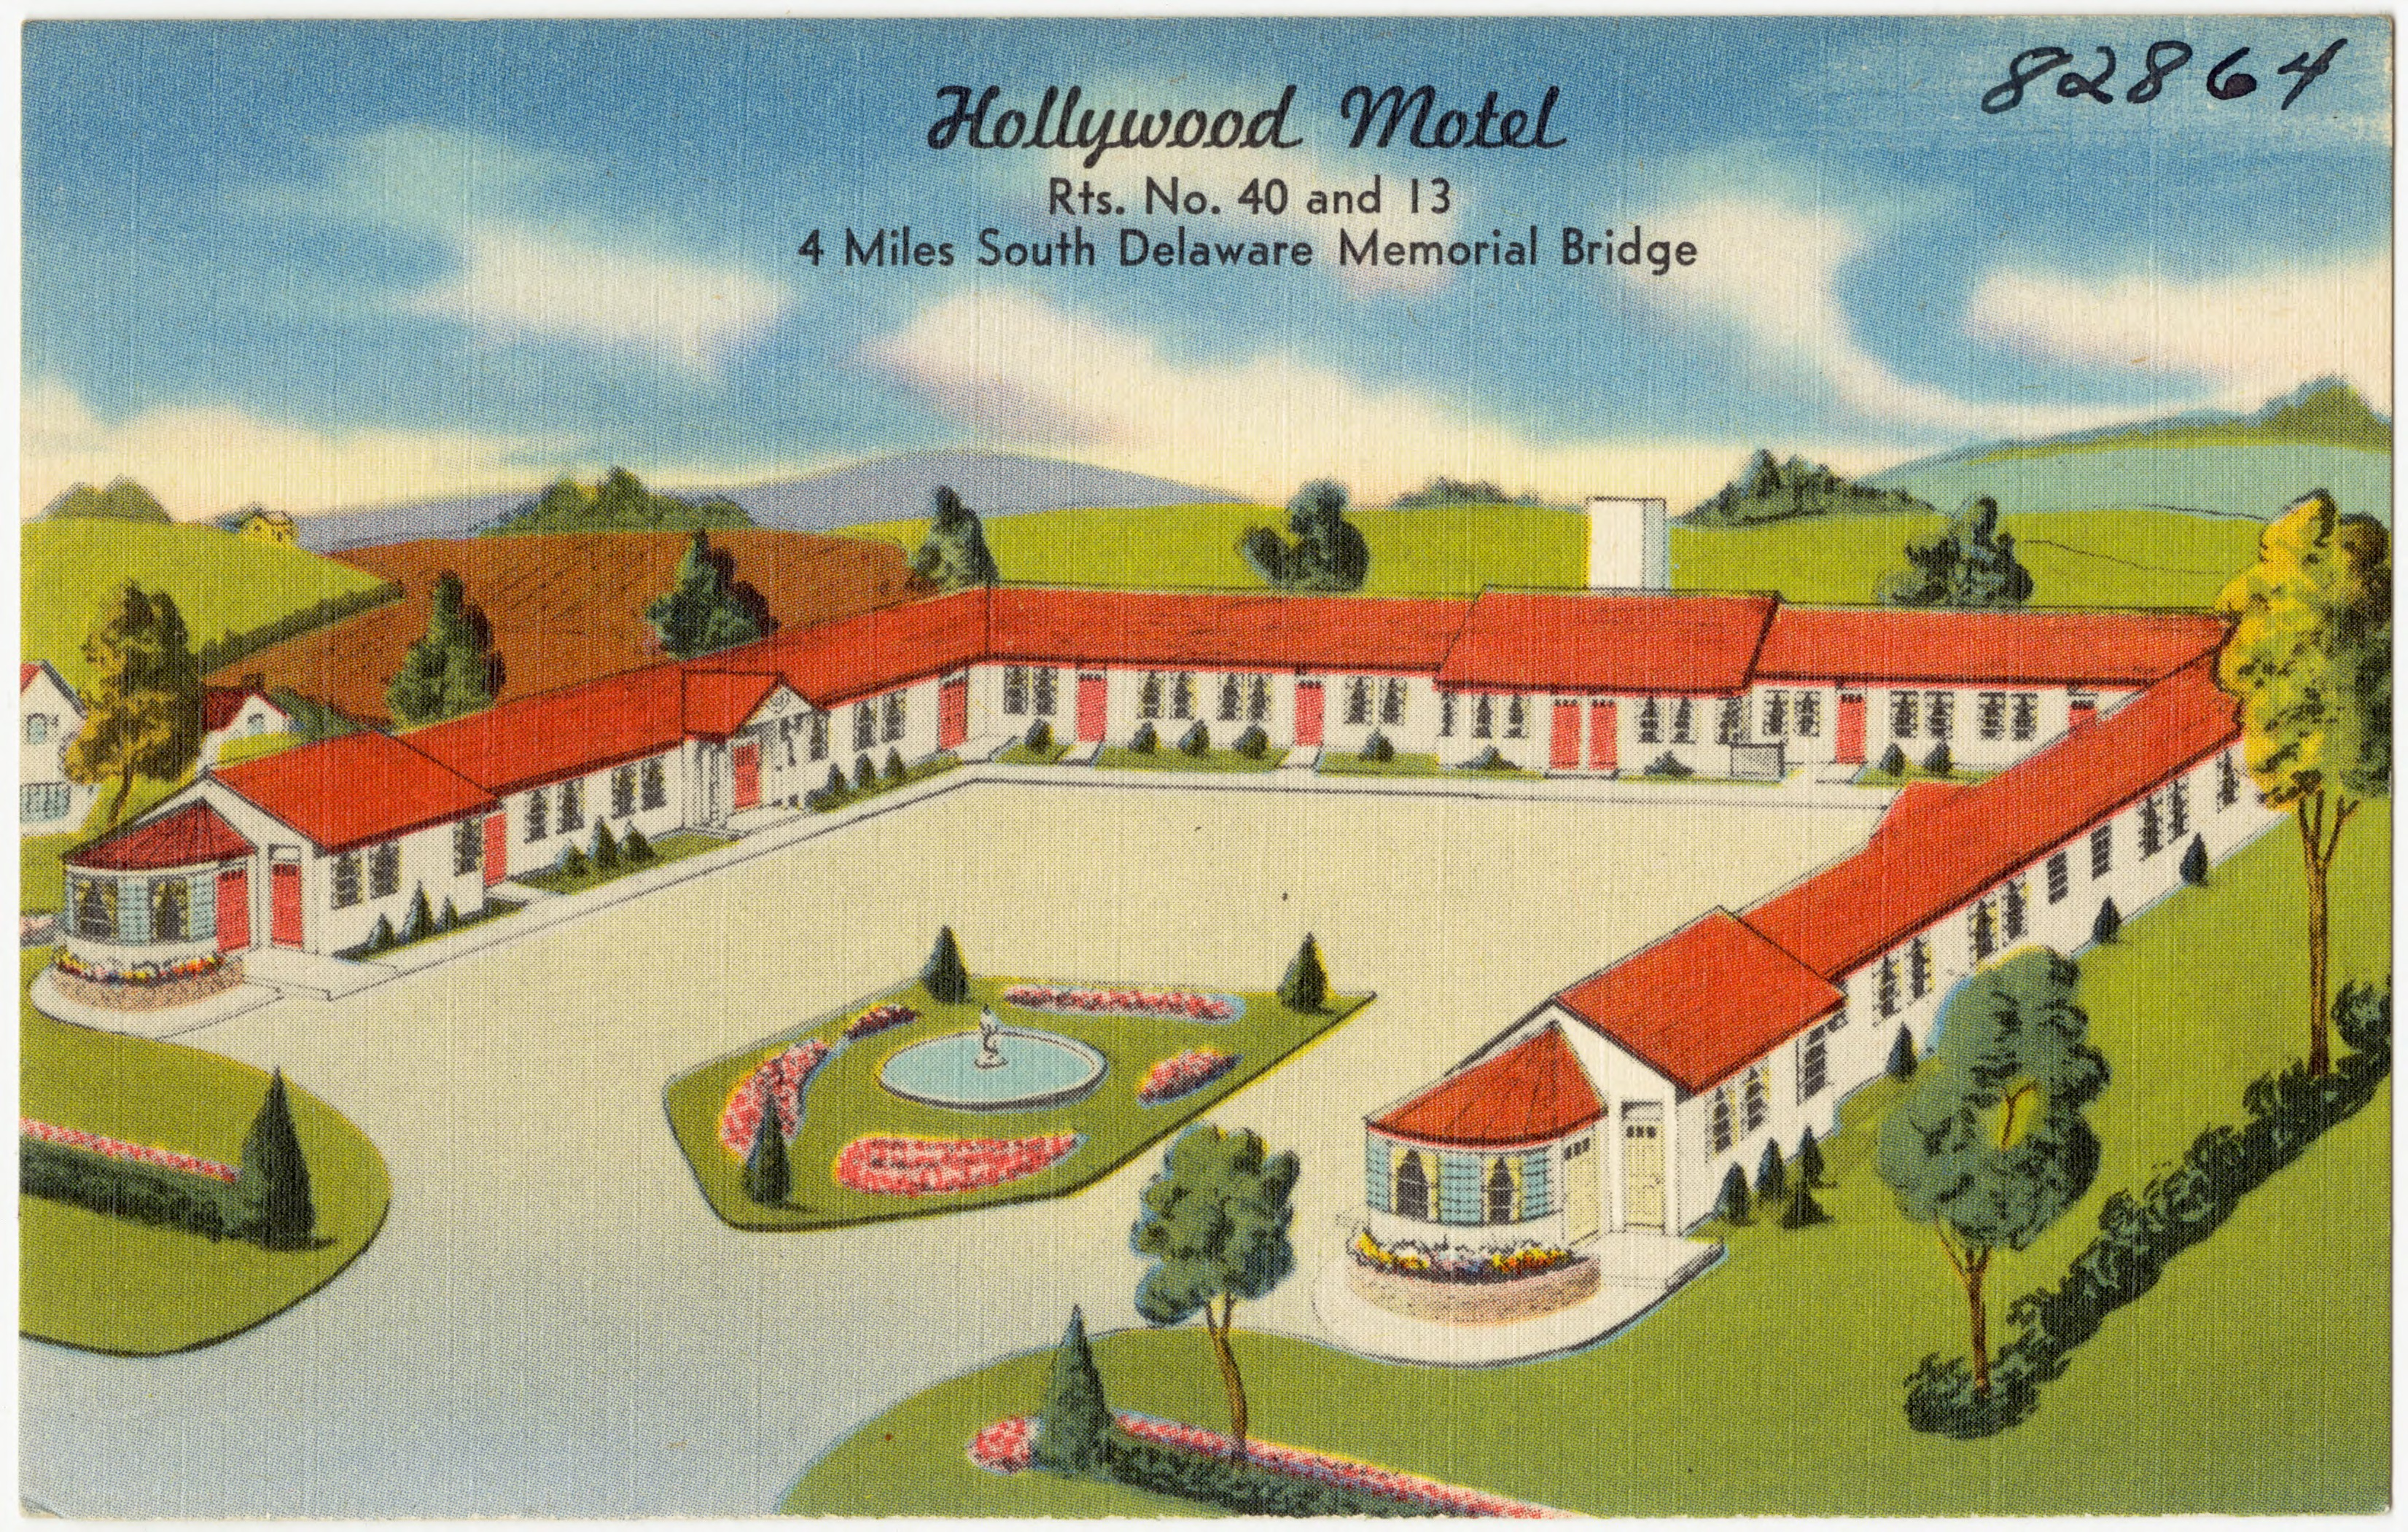 Hollywood Motel File Hollywood Motel Rts No 40 And 13 4 Miles South Delaware